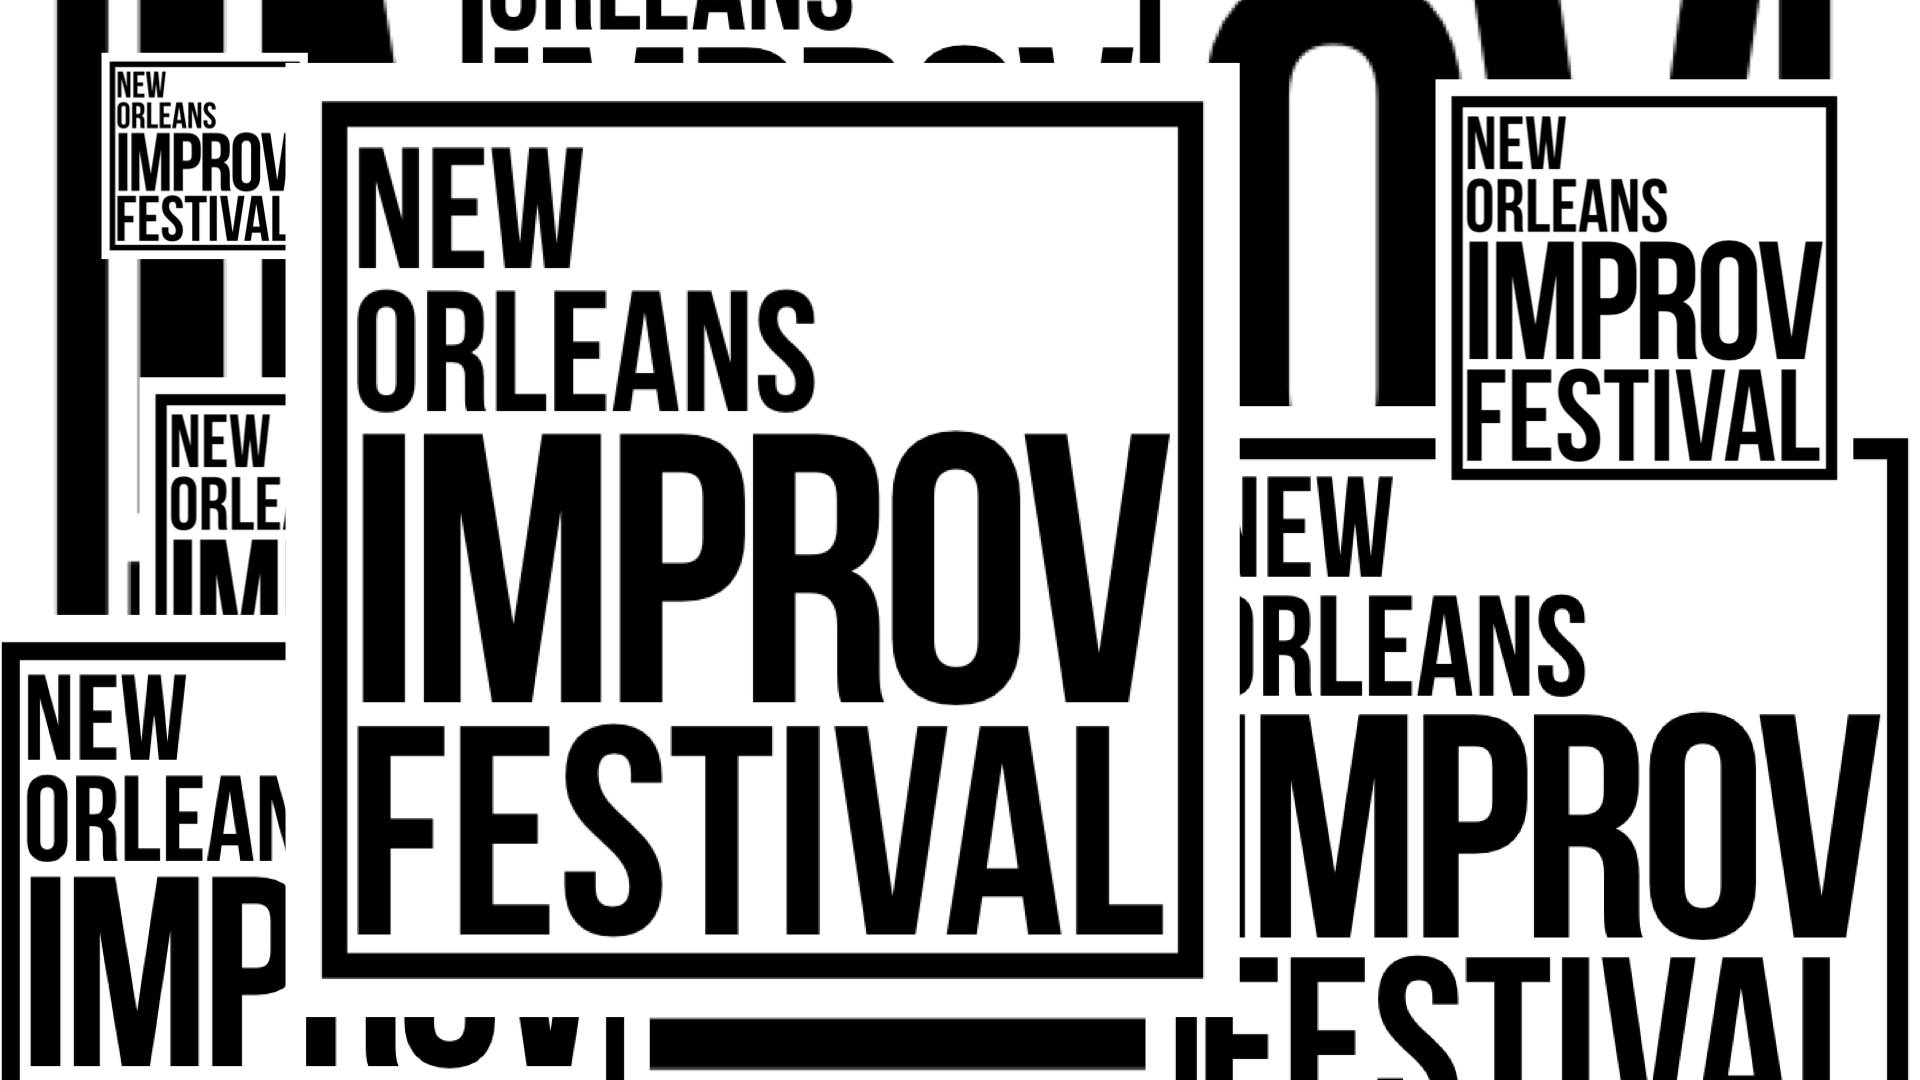 New Orleans Improv Festival - We are thrilled to be producing the inaugural New Orleans Improv Festival, Sept 27-29th 2019! Check out the schedule and get your tickets below.